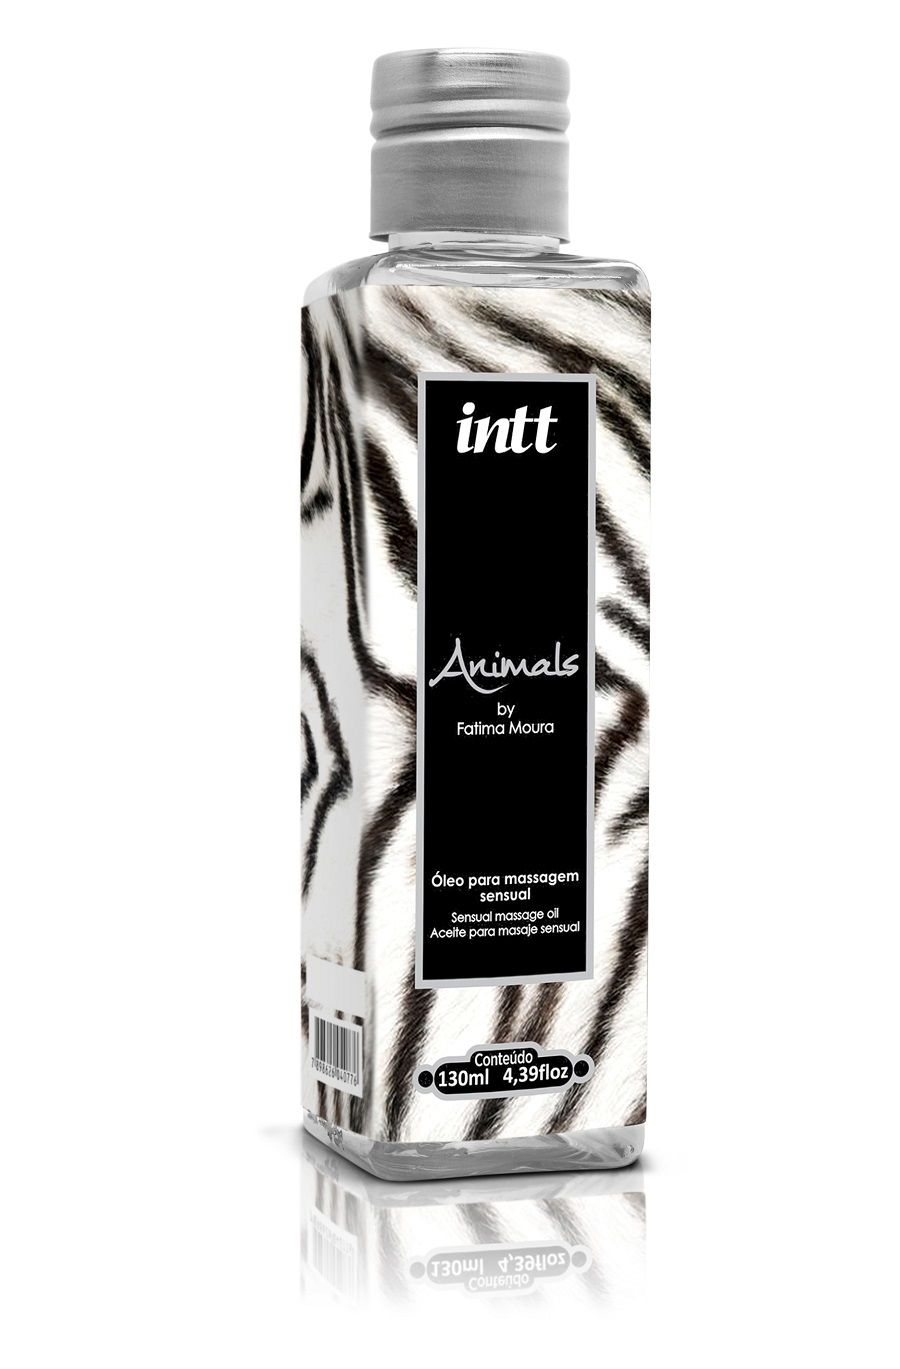 Intt Animals Óleo de Massagem Corporal 130 ml